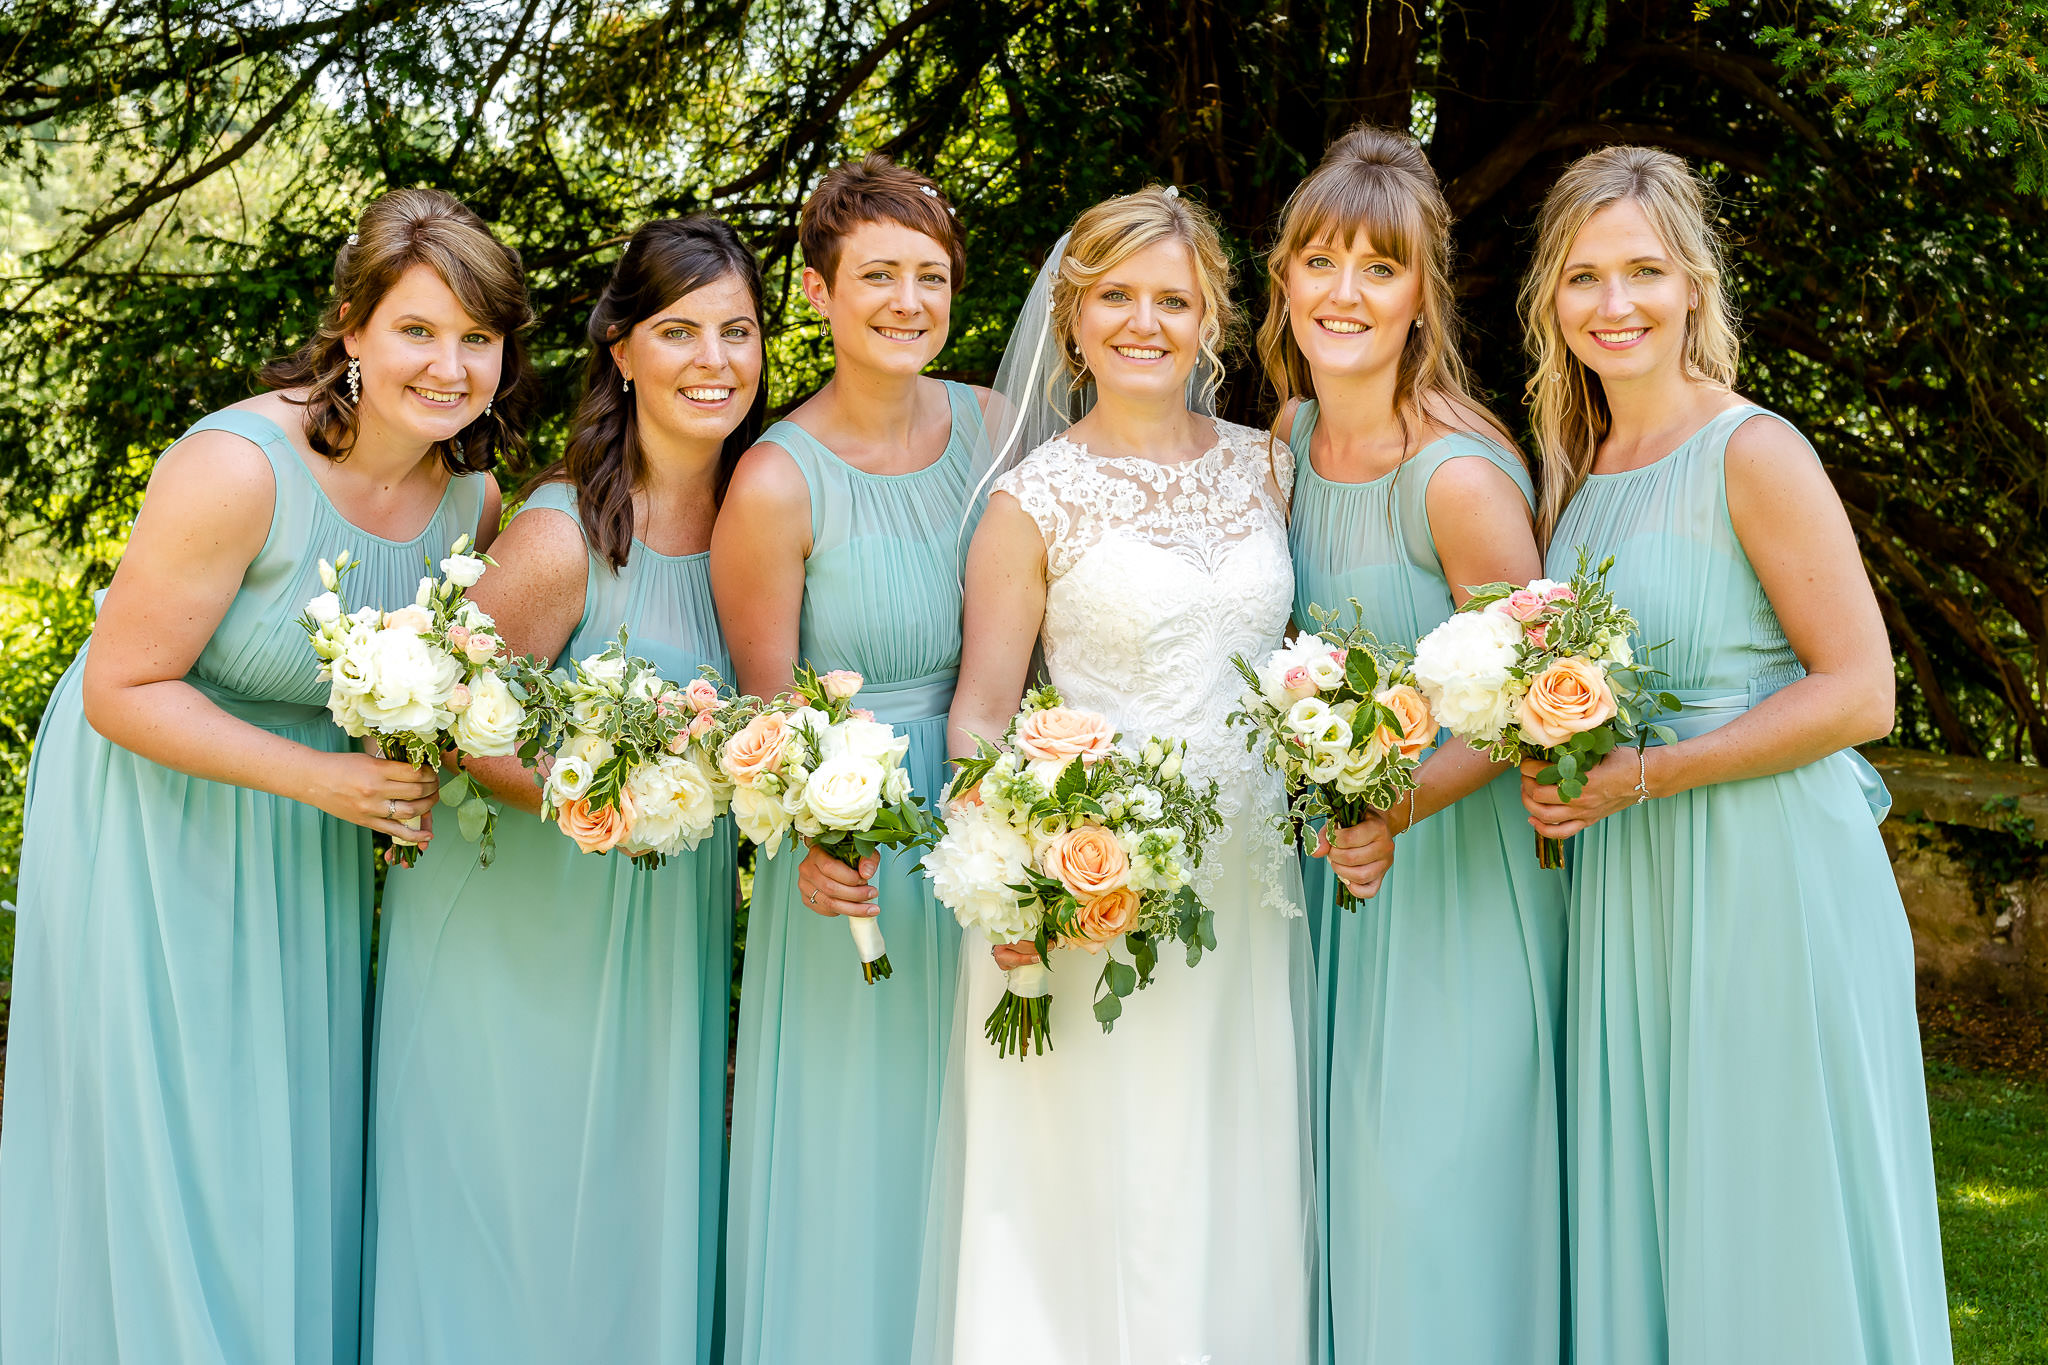 Art by Design - Caer Llan Wedding Photography - Bridesmaids